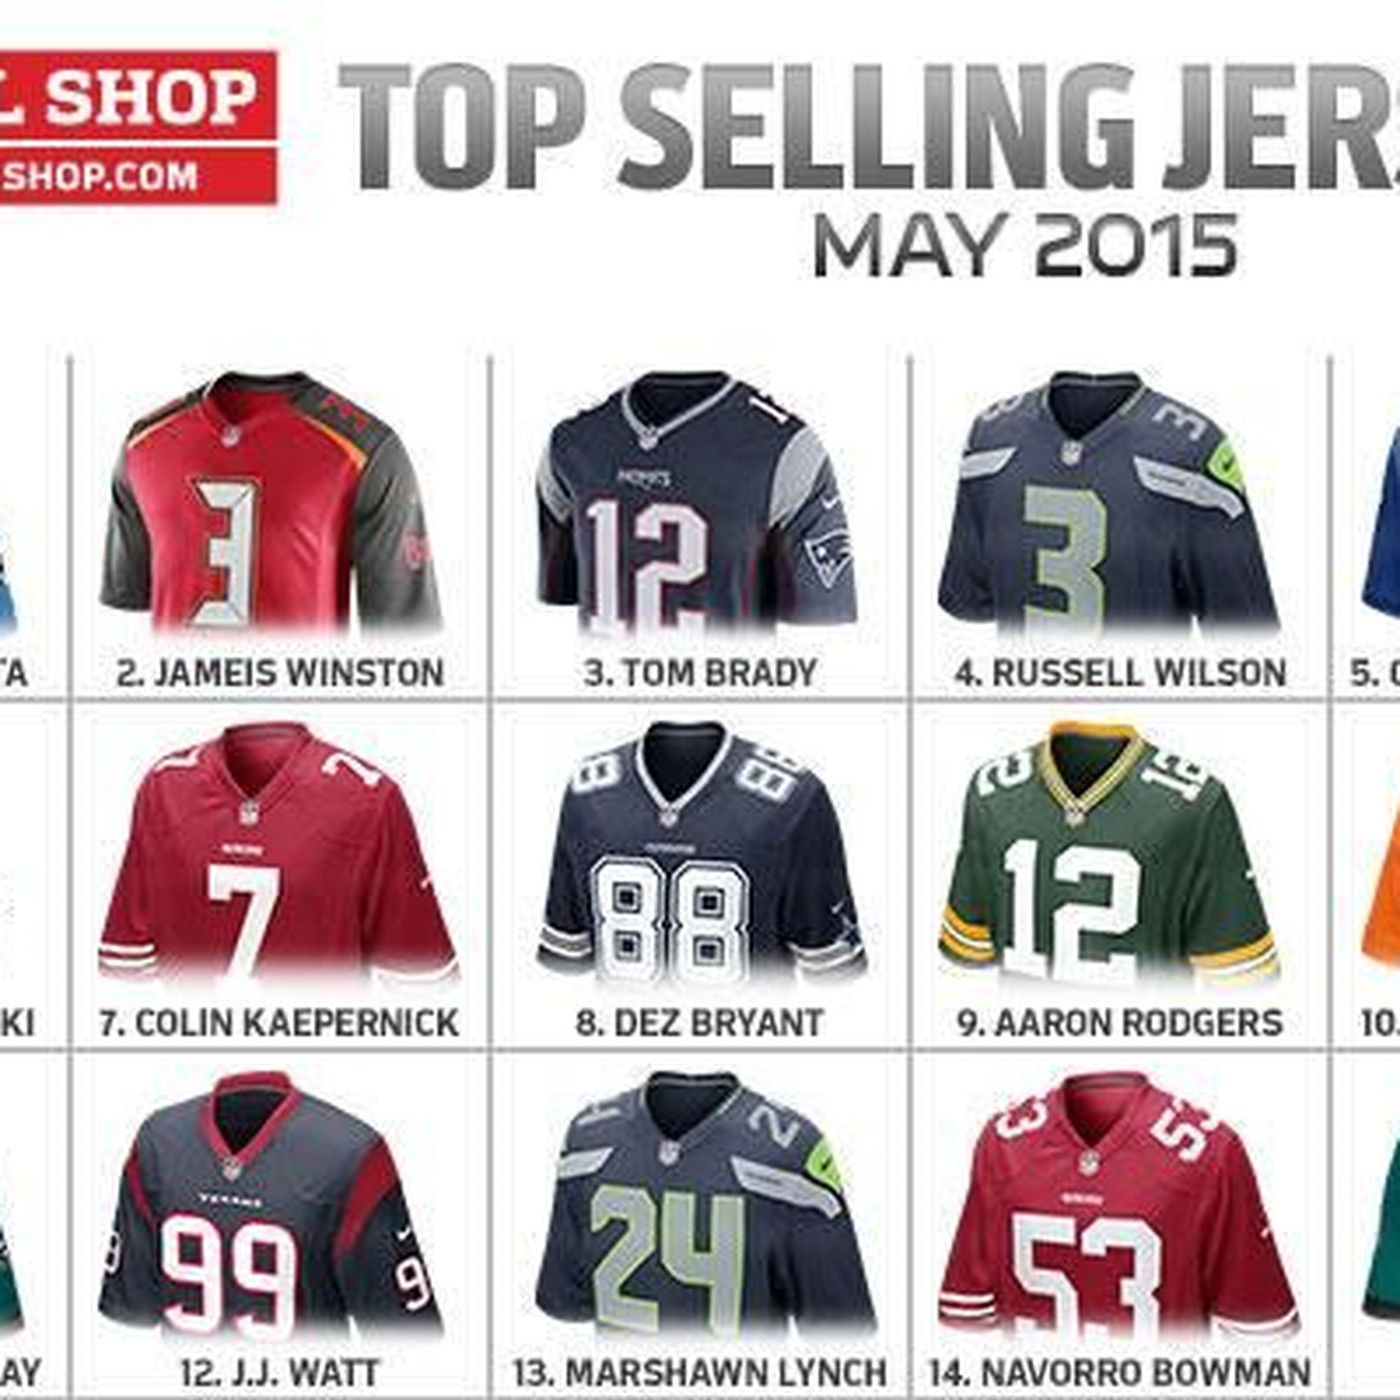 Ndamukong Suh jersey among top sellers for NFL in May - The ...